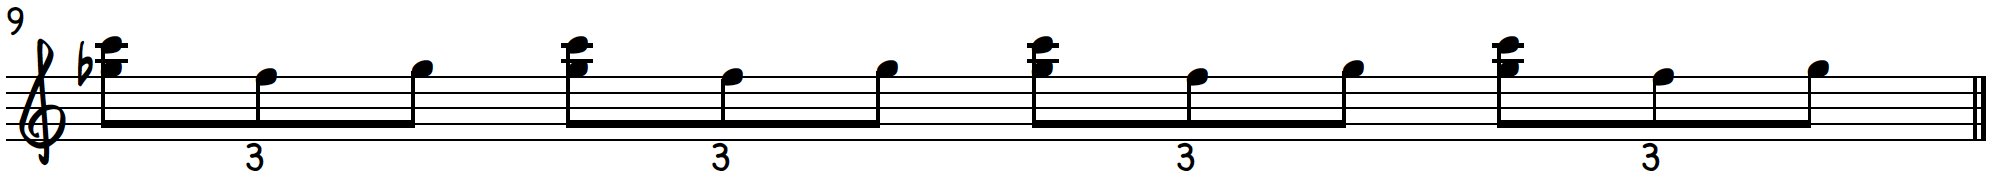 Grip 2 triplet exercise to practice blues piano licks